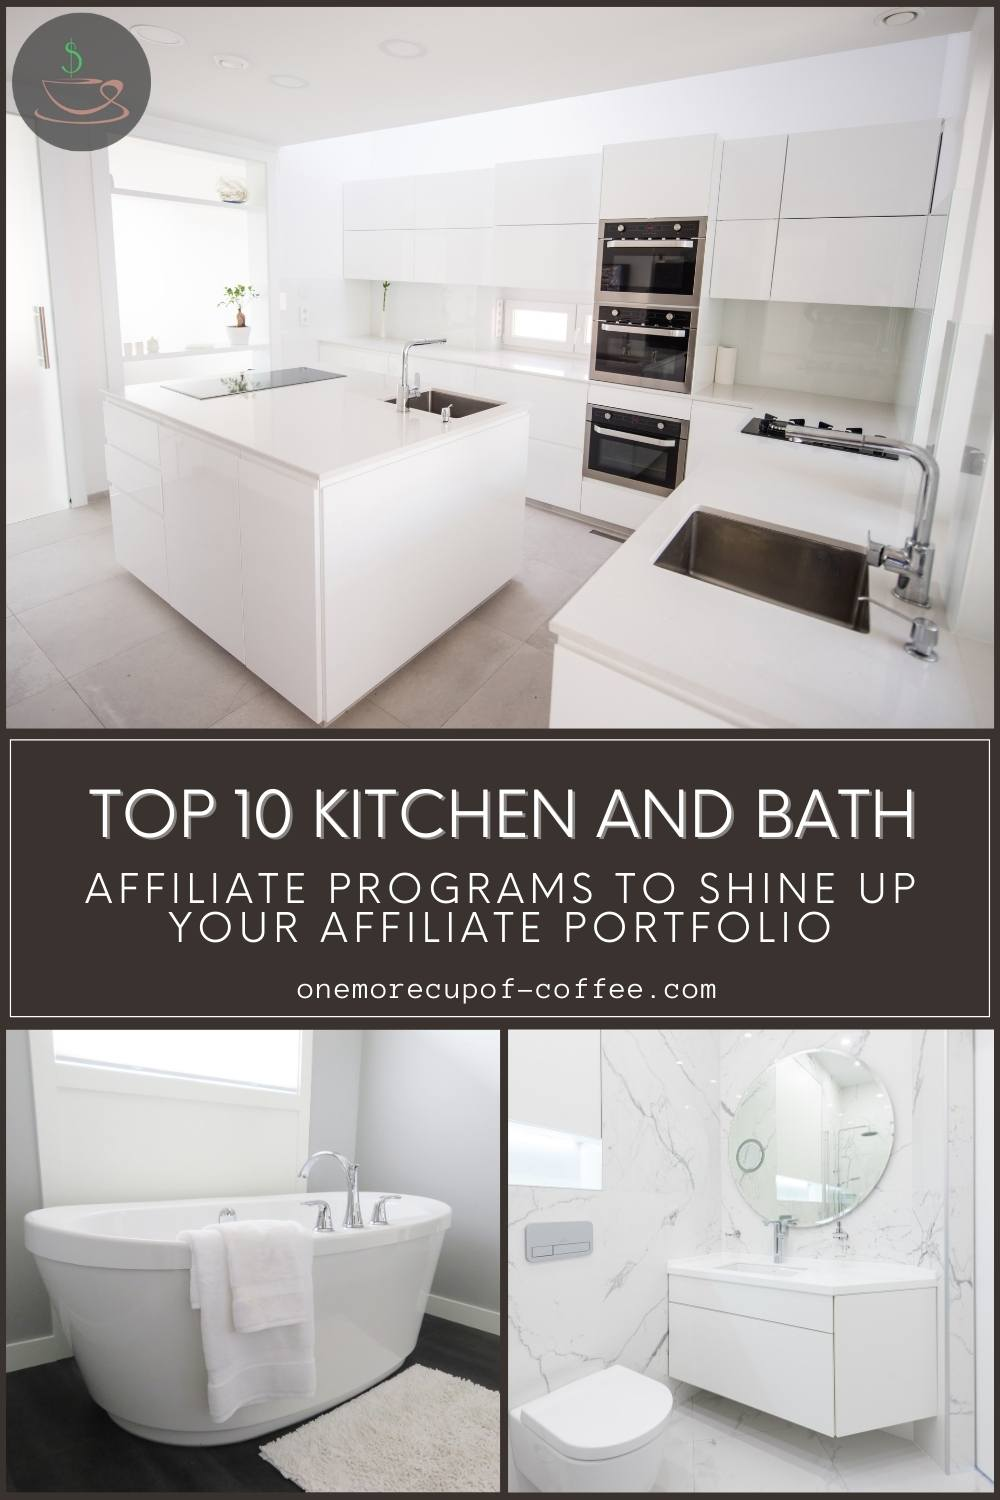 photo collage of a white kitchen, white bath tub, and white toilet and lavatory sink; with text overlay